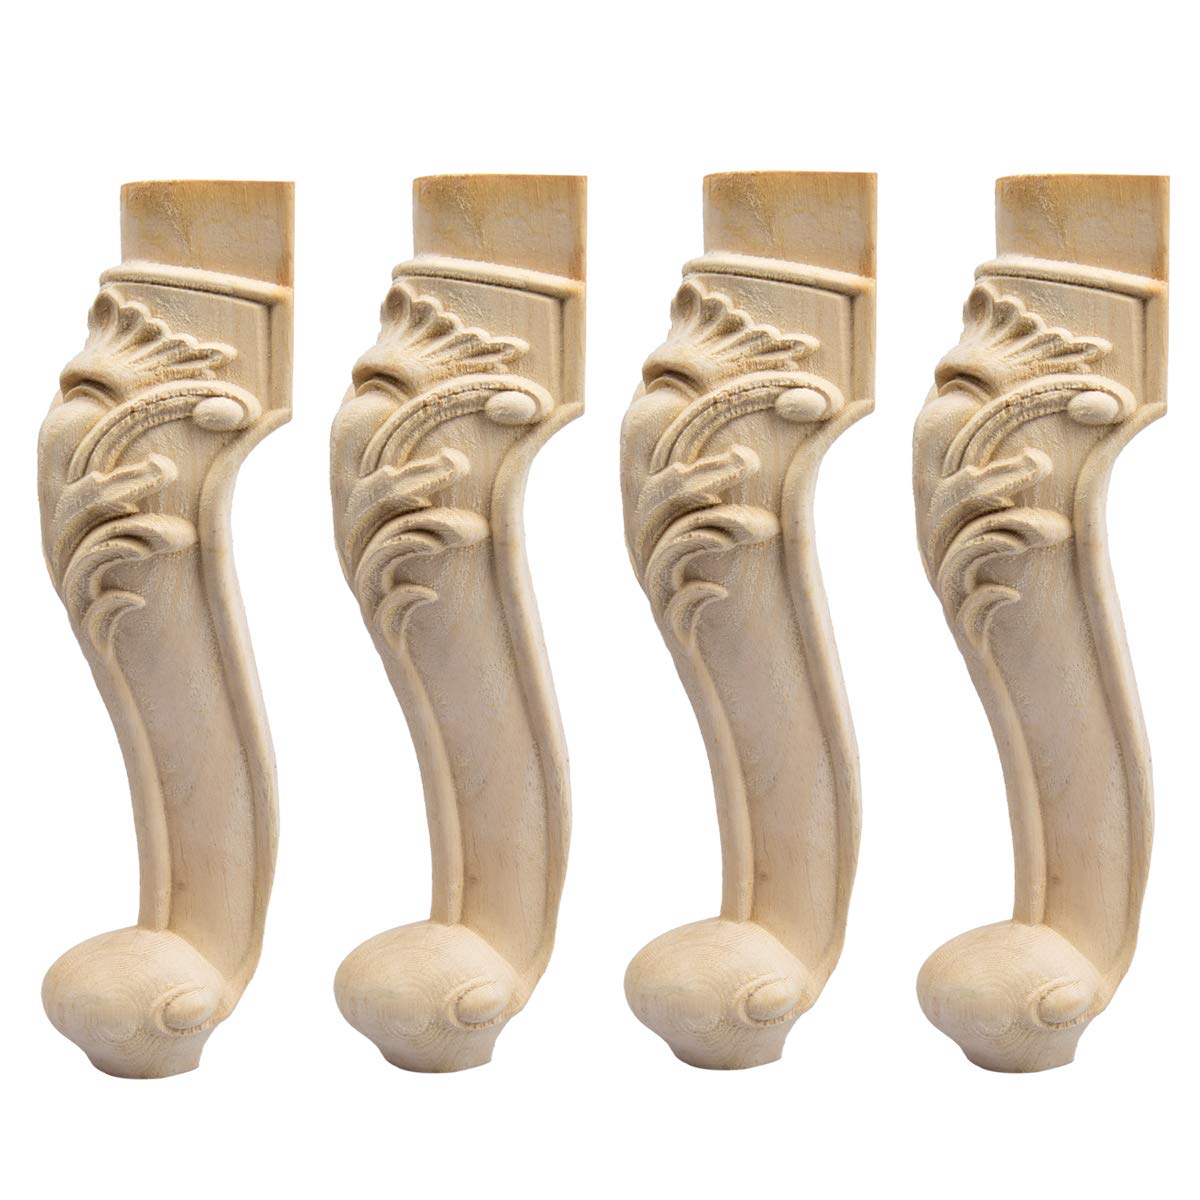 20 inch / 50cm Wooden Furniture Legs, La Vane Set of 4 European Style Solid Wood Carving Furniture Replacement Feet Decoration for Sofa Cabinet Wardrobe Table Loveseat